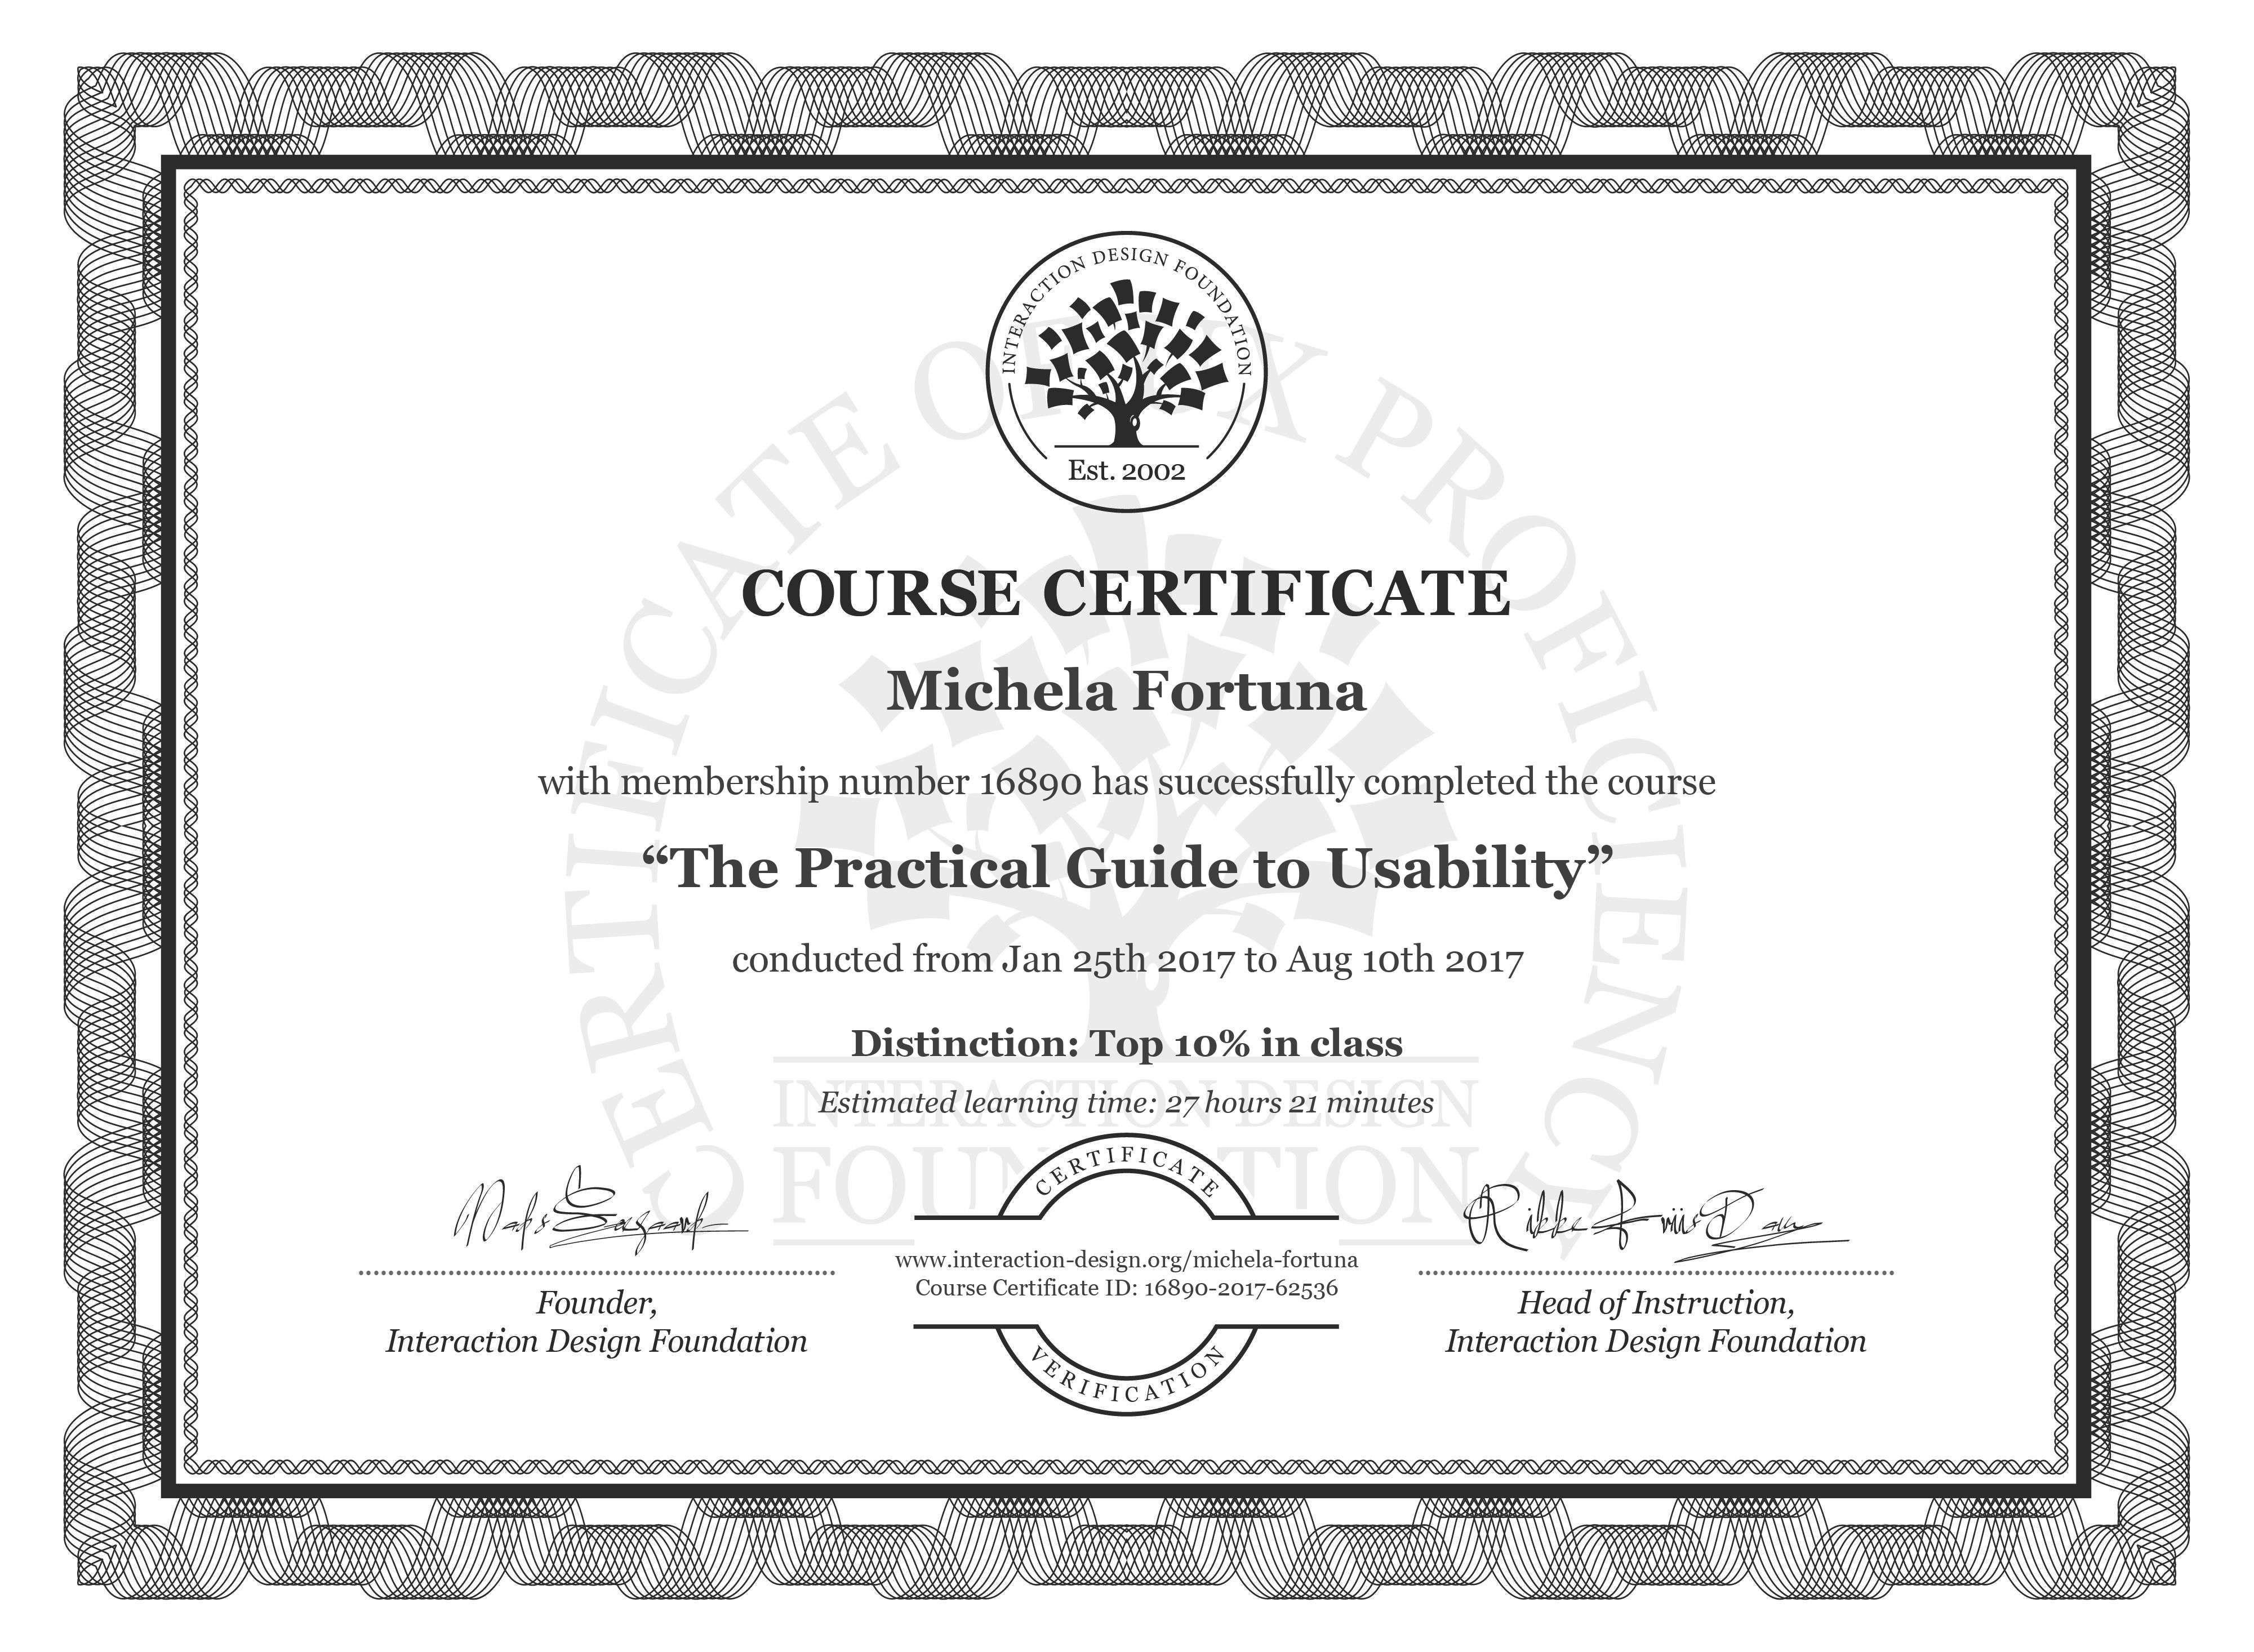 Michela Fortuna: Course Certificate - The Practical Guide to Usability